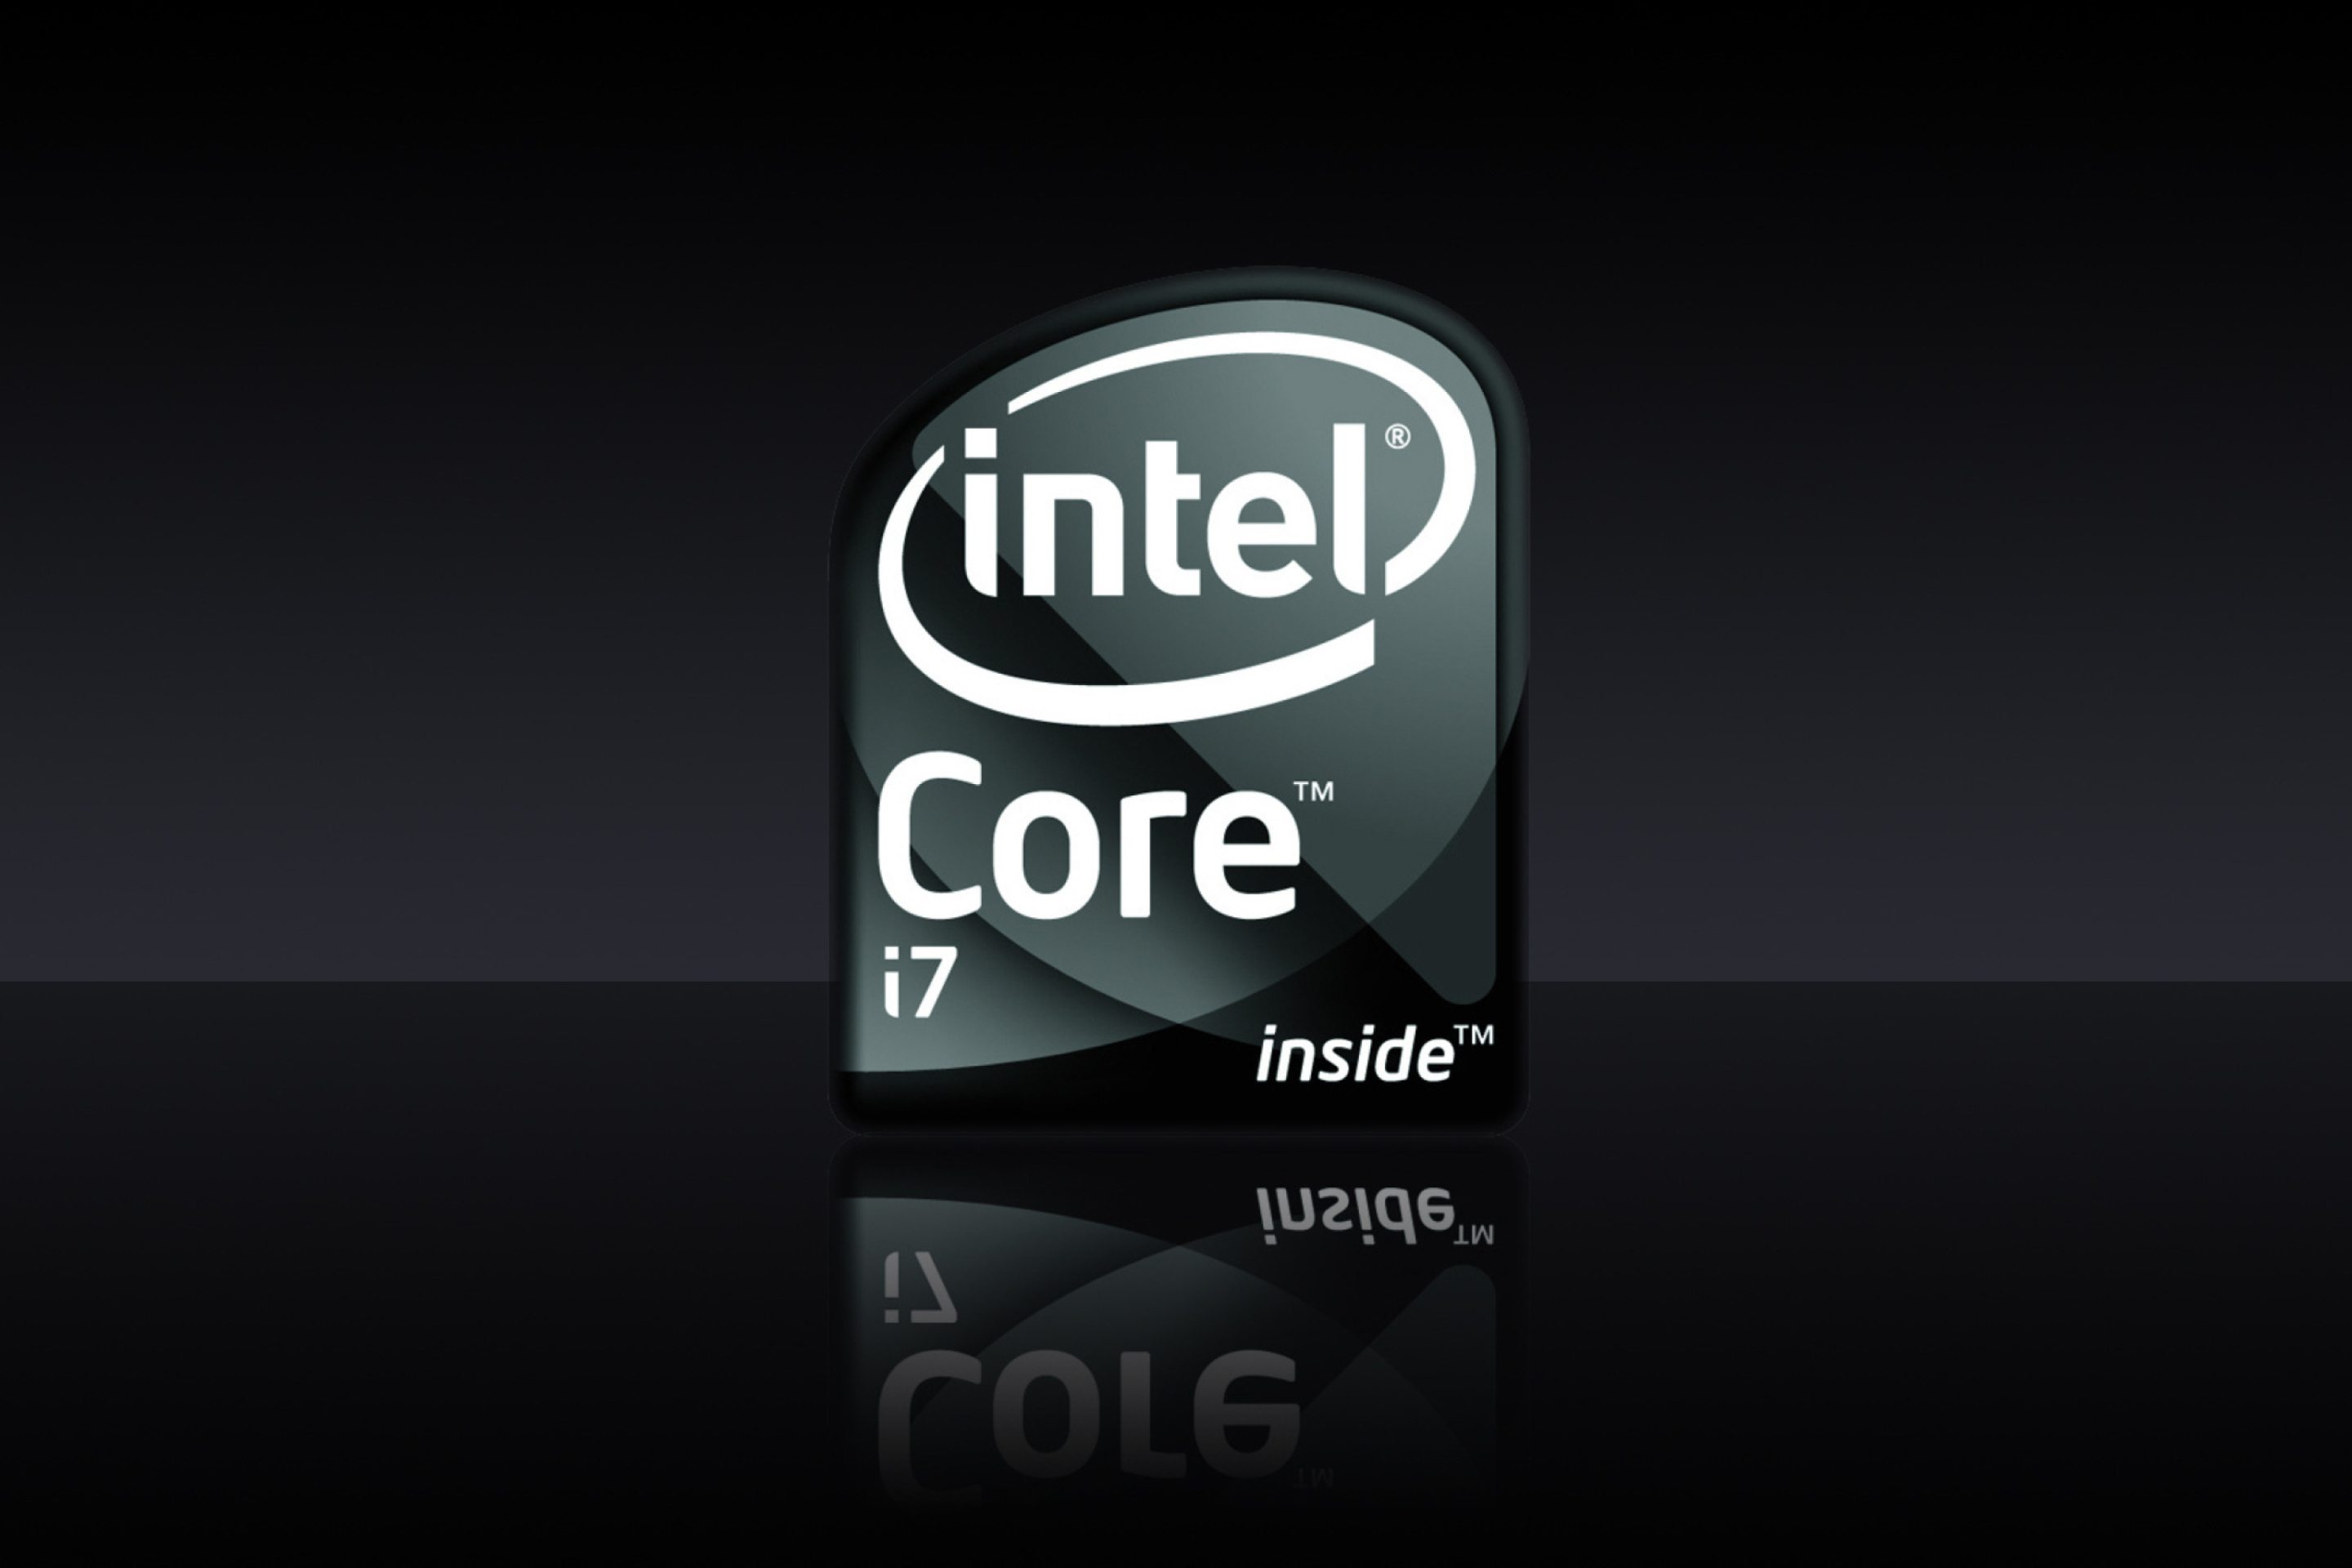 Intel Core I7 wallpaper 2880x1920